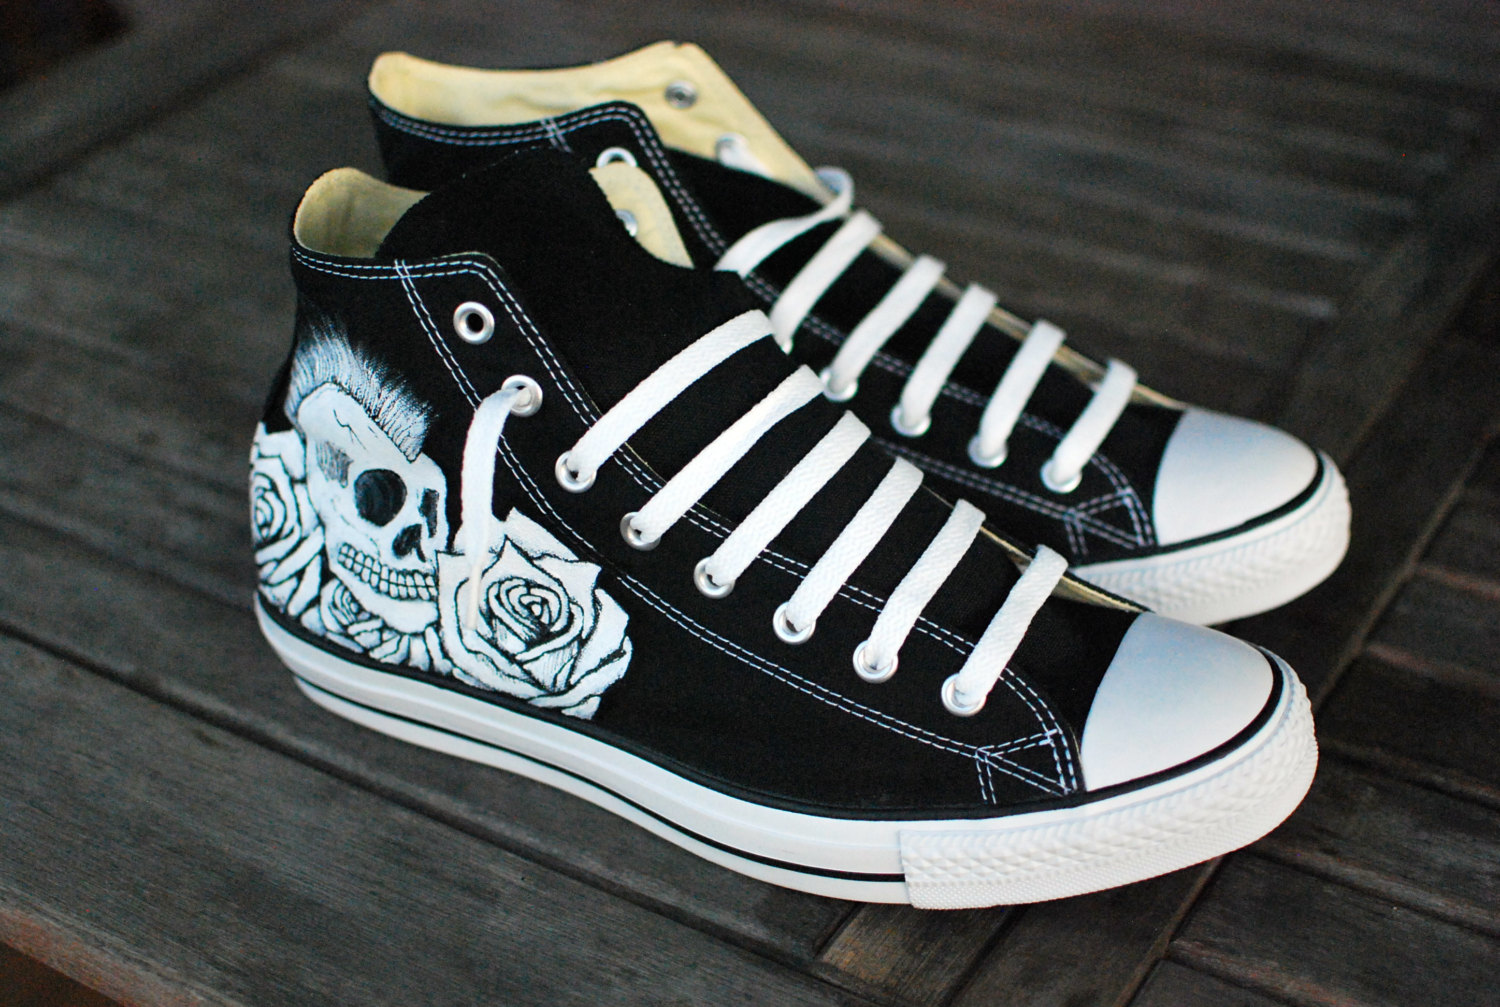 Rocker skull and roses hi top converse